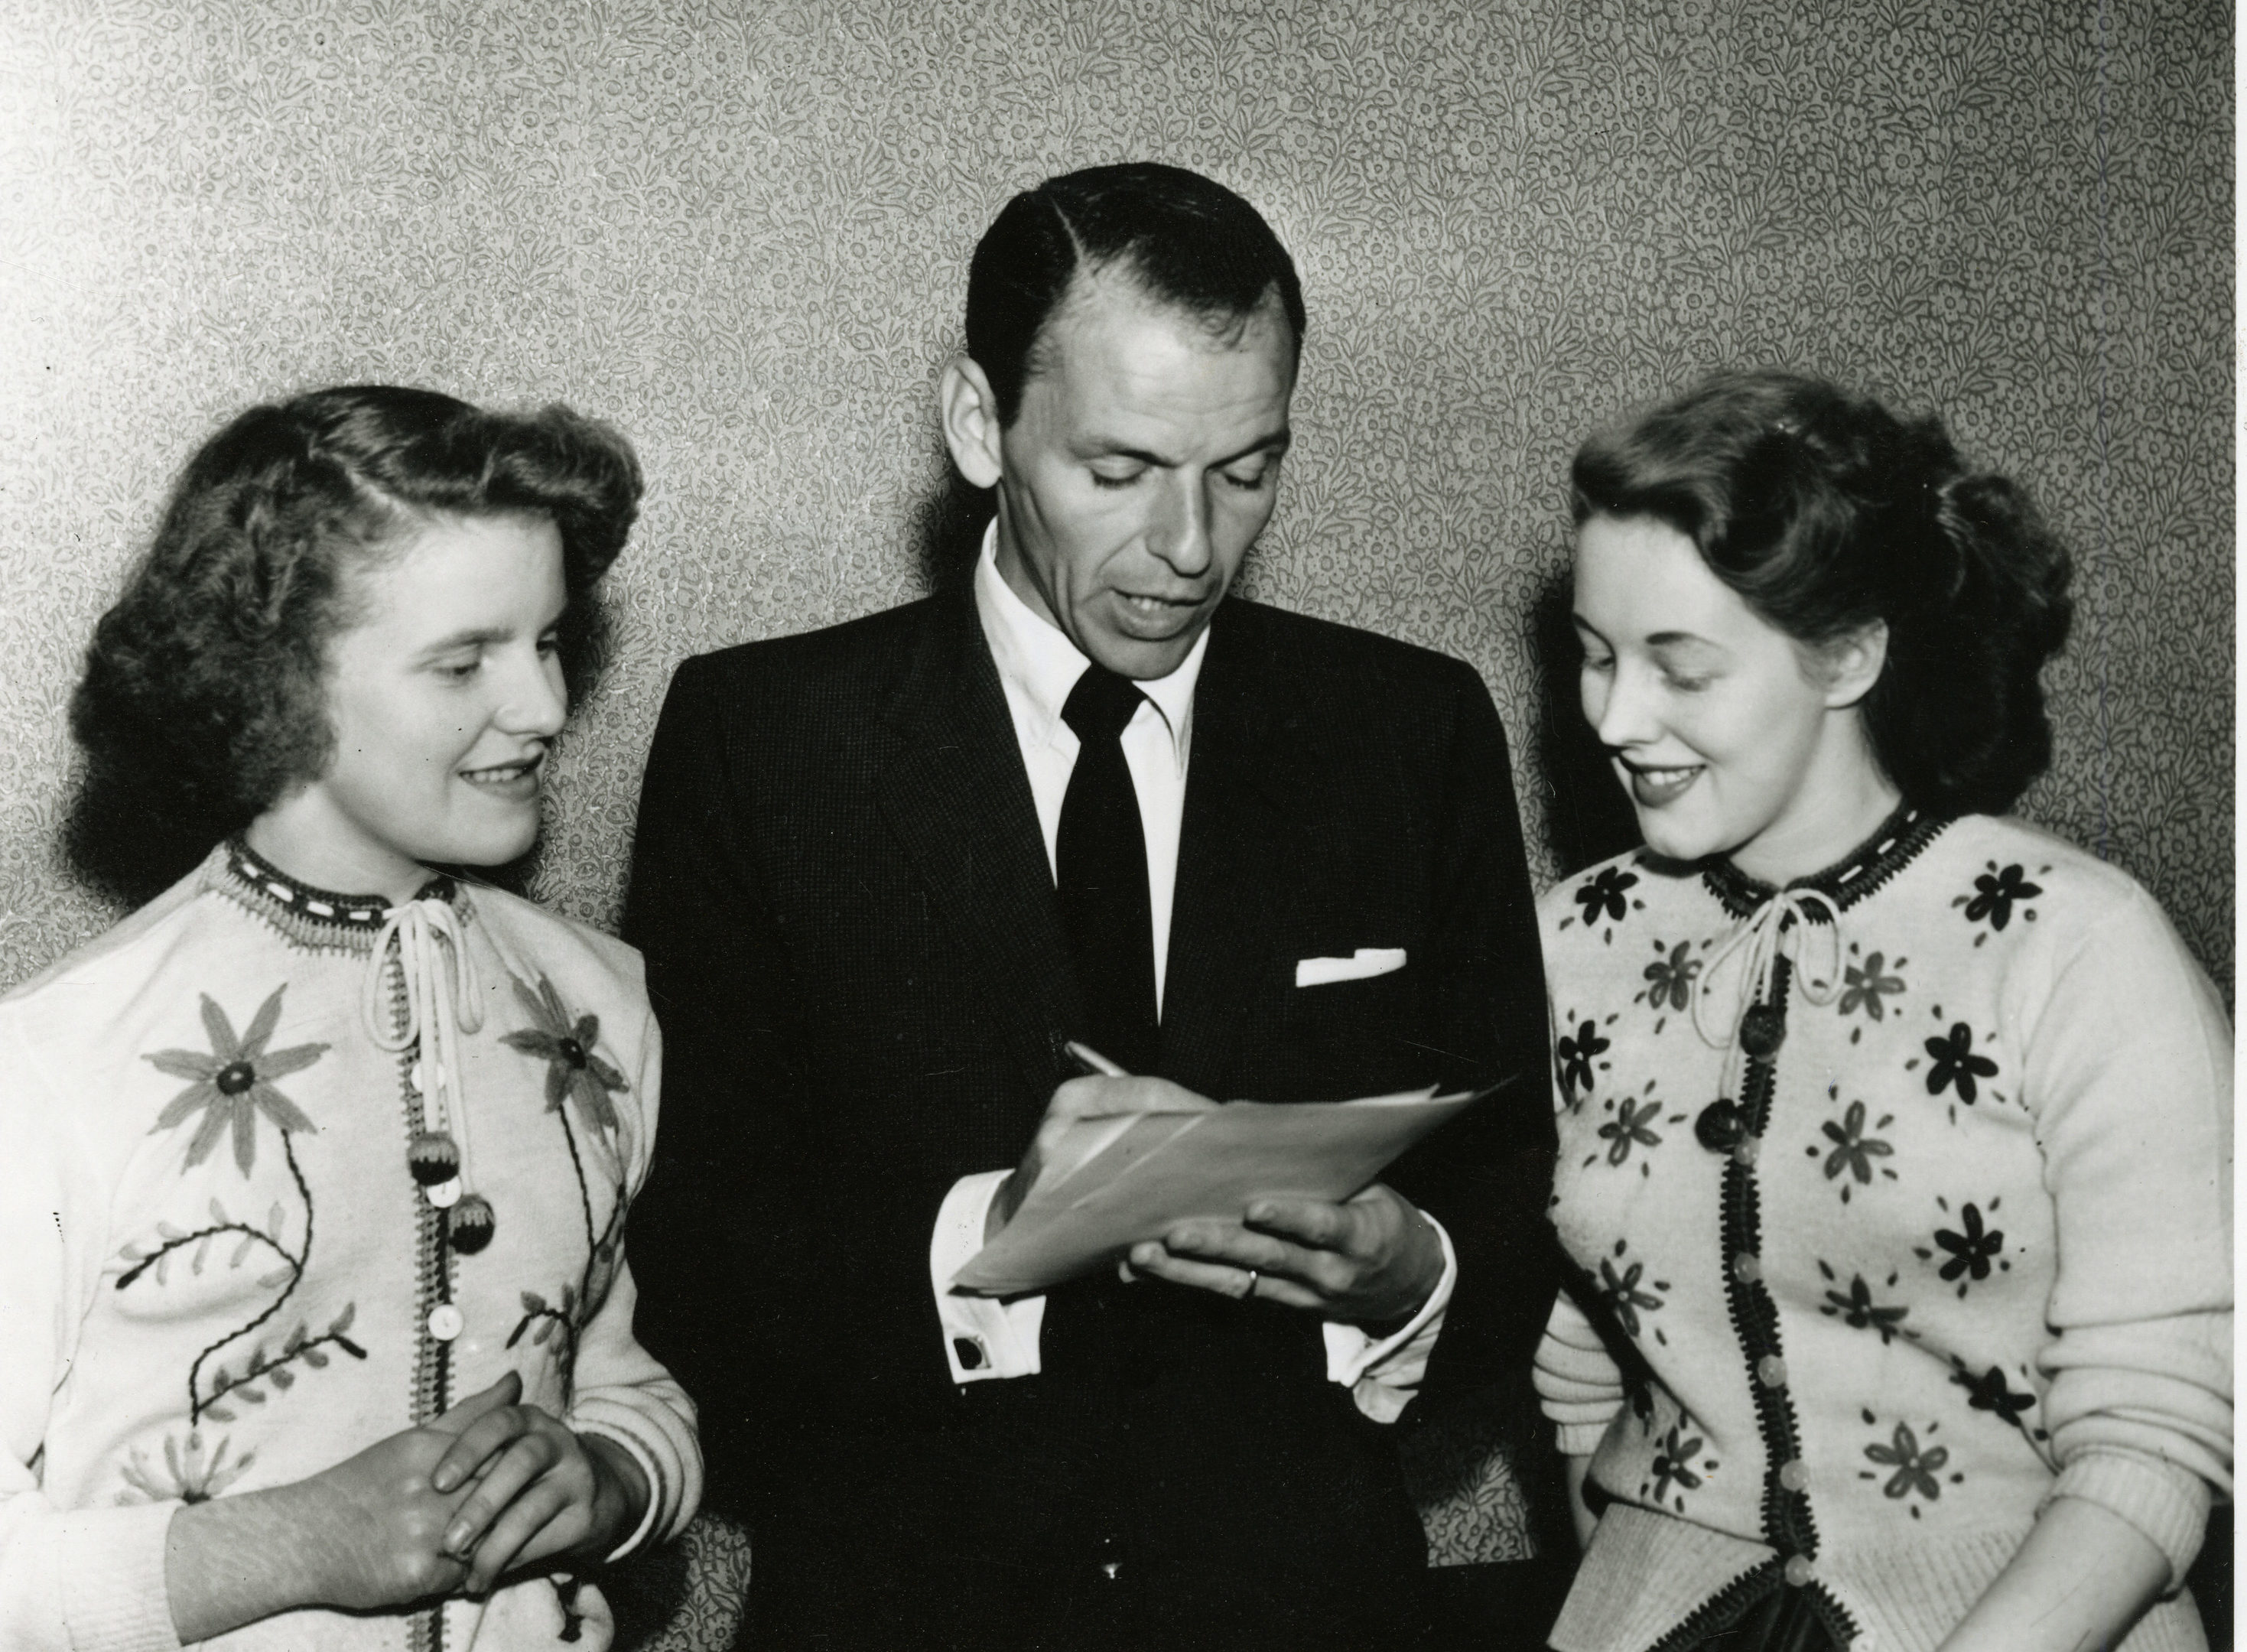 Frank Sinatra signing autographs after his Caird Hall concert.